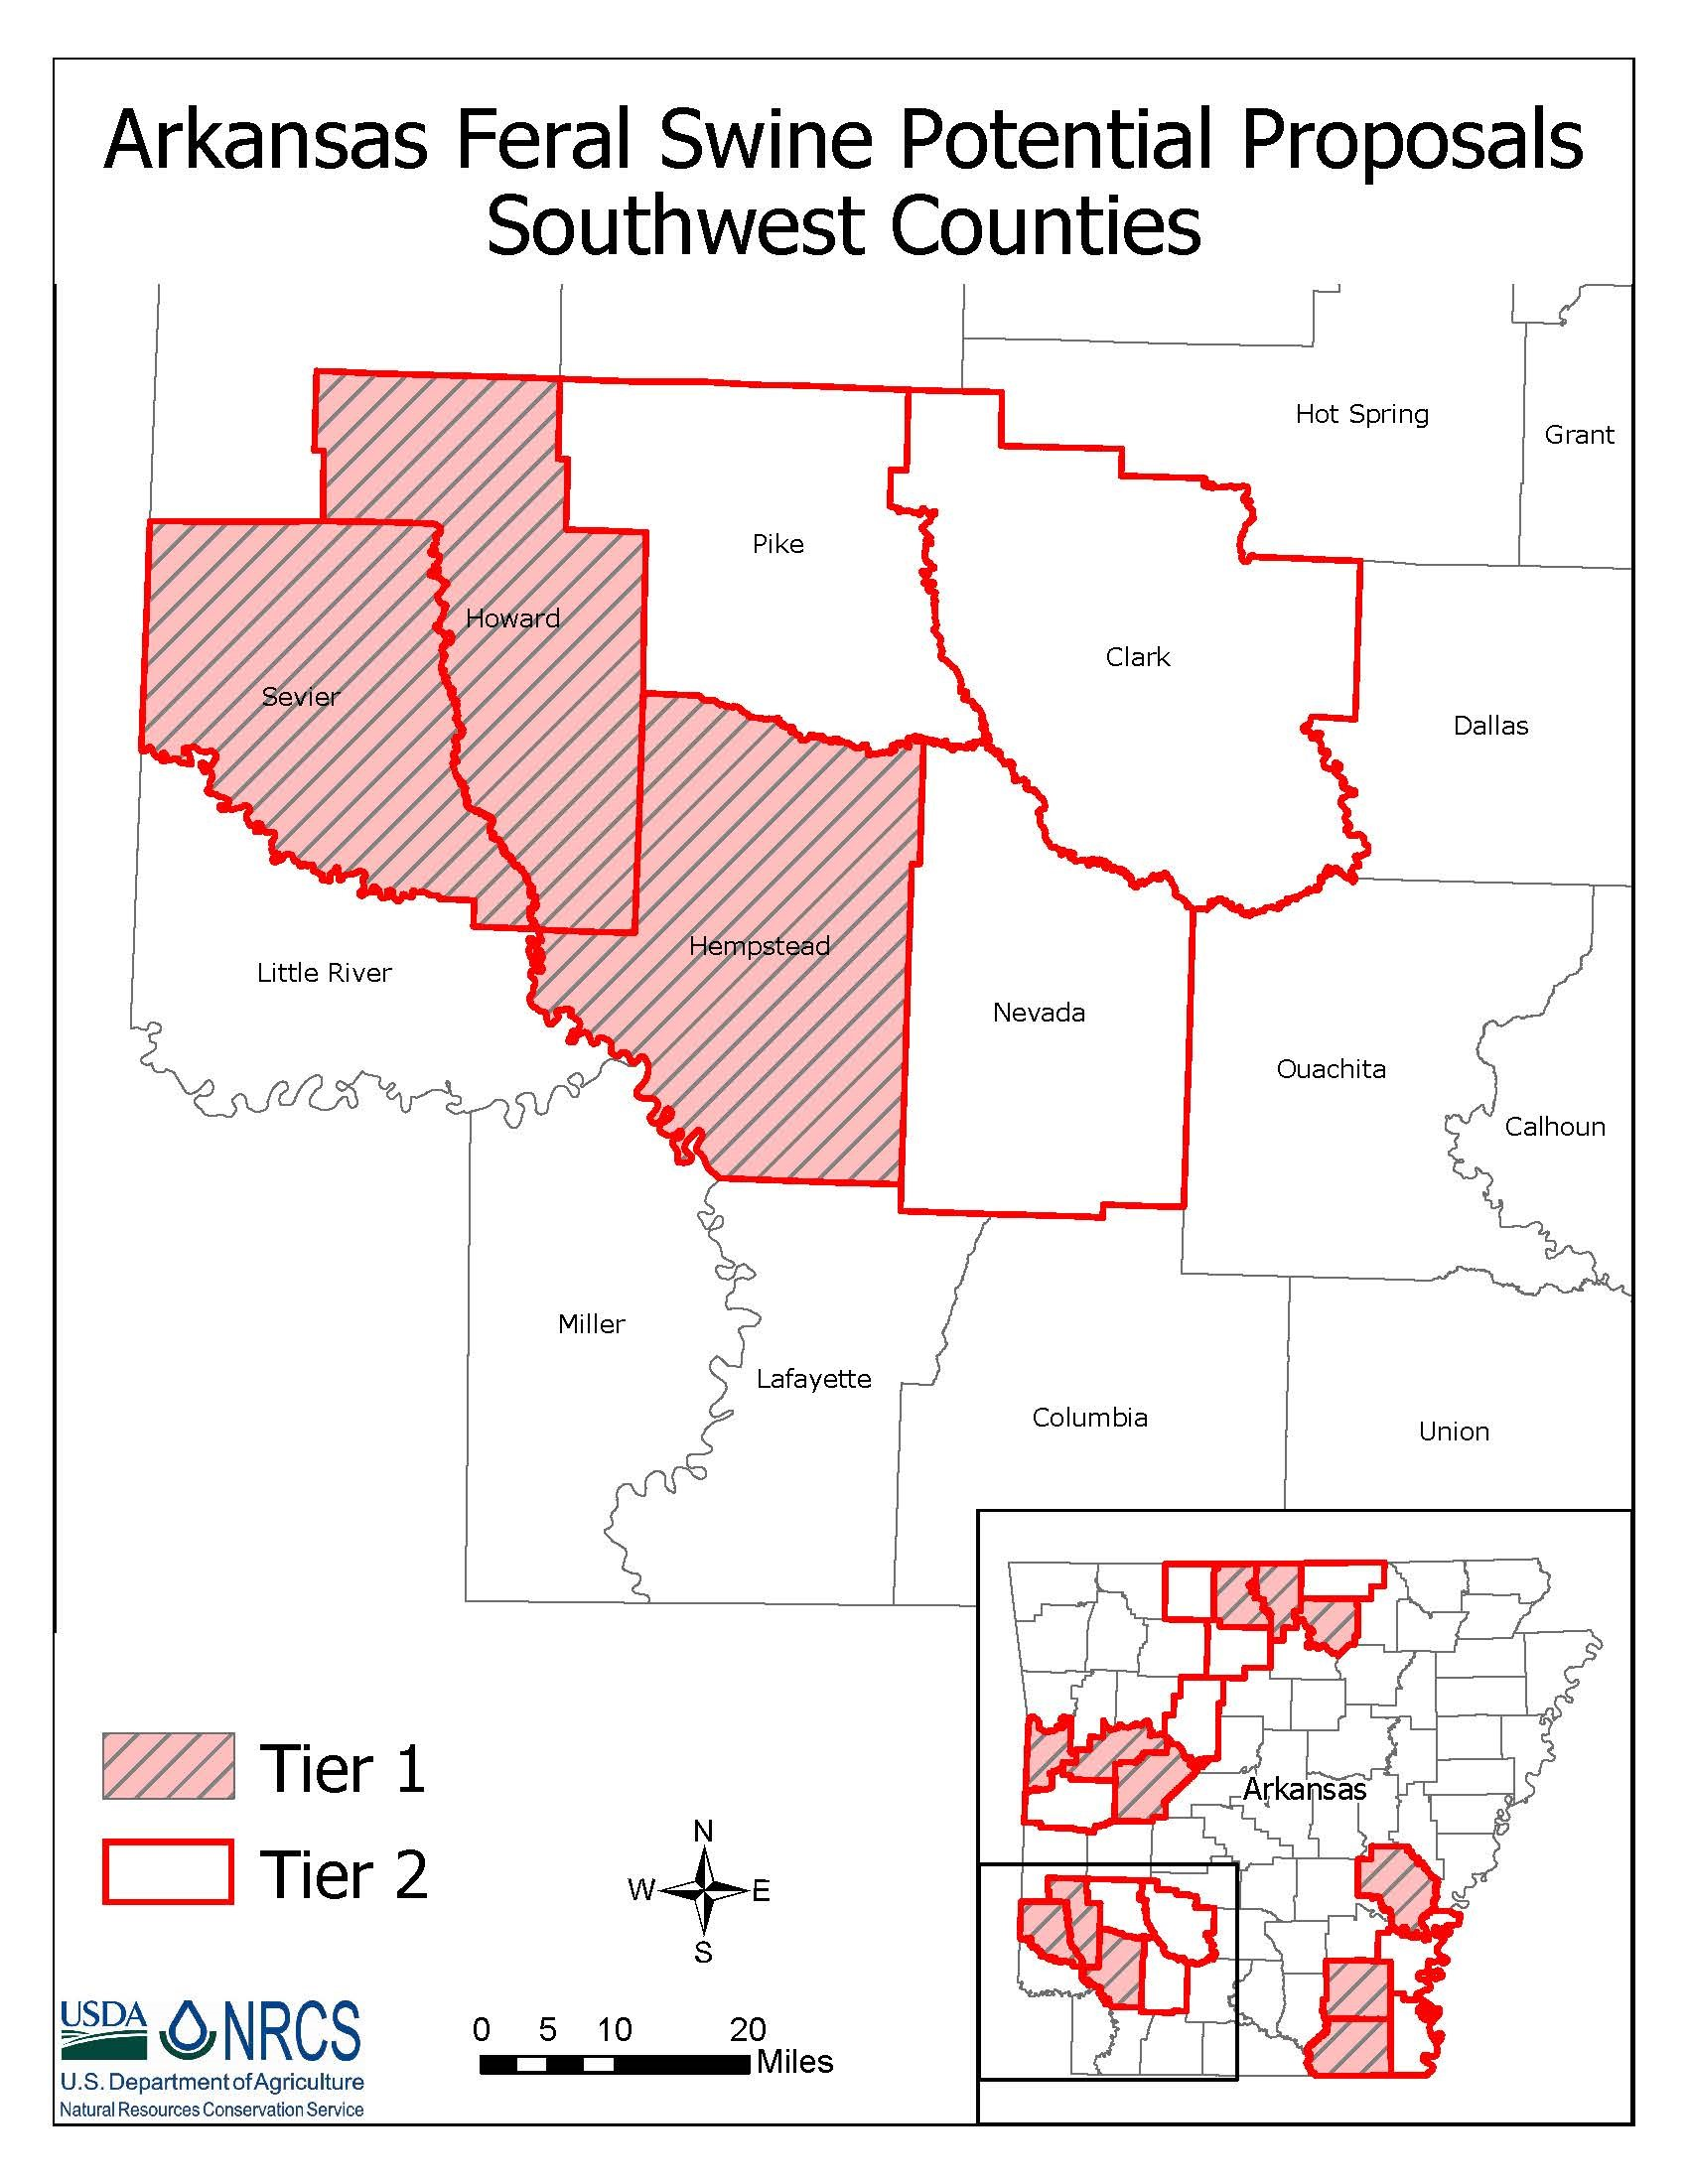 Arkansas Southwest Feral Swine Control Pilot Project | NRCS